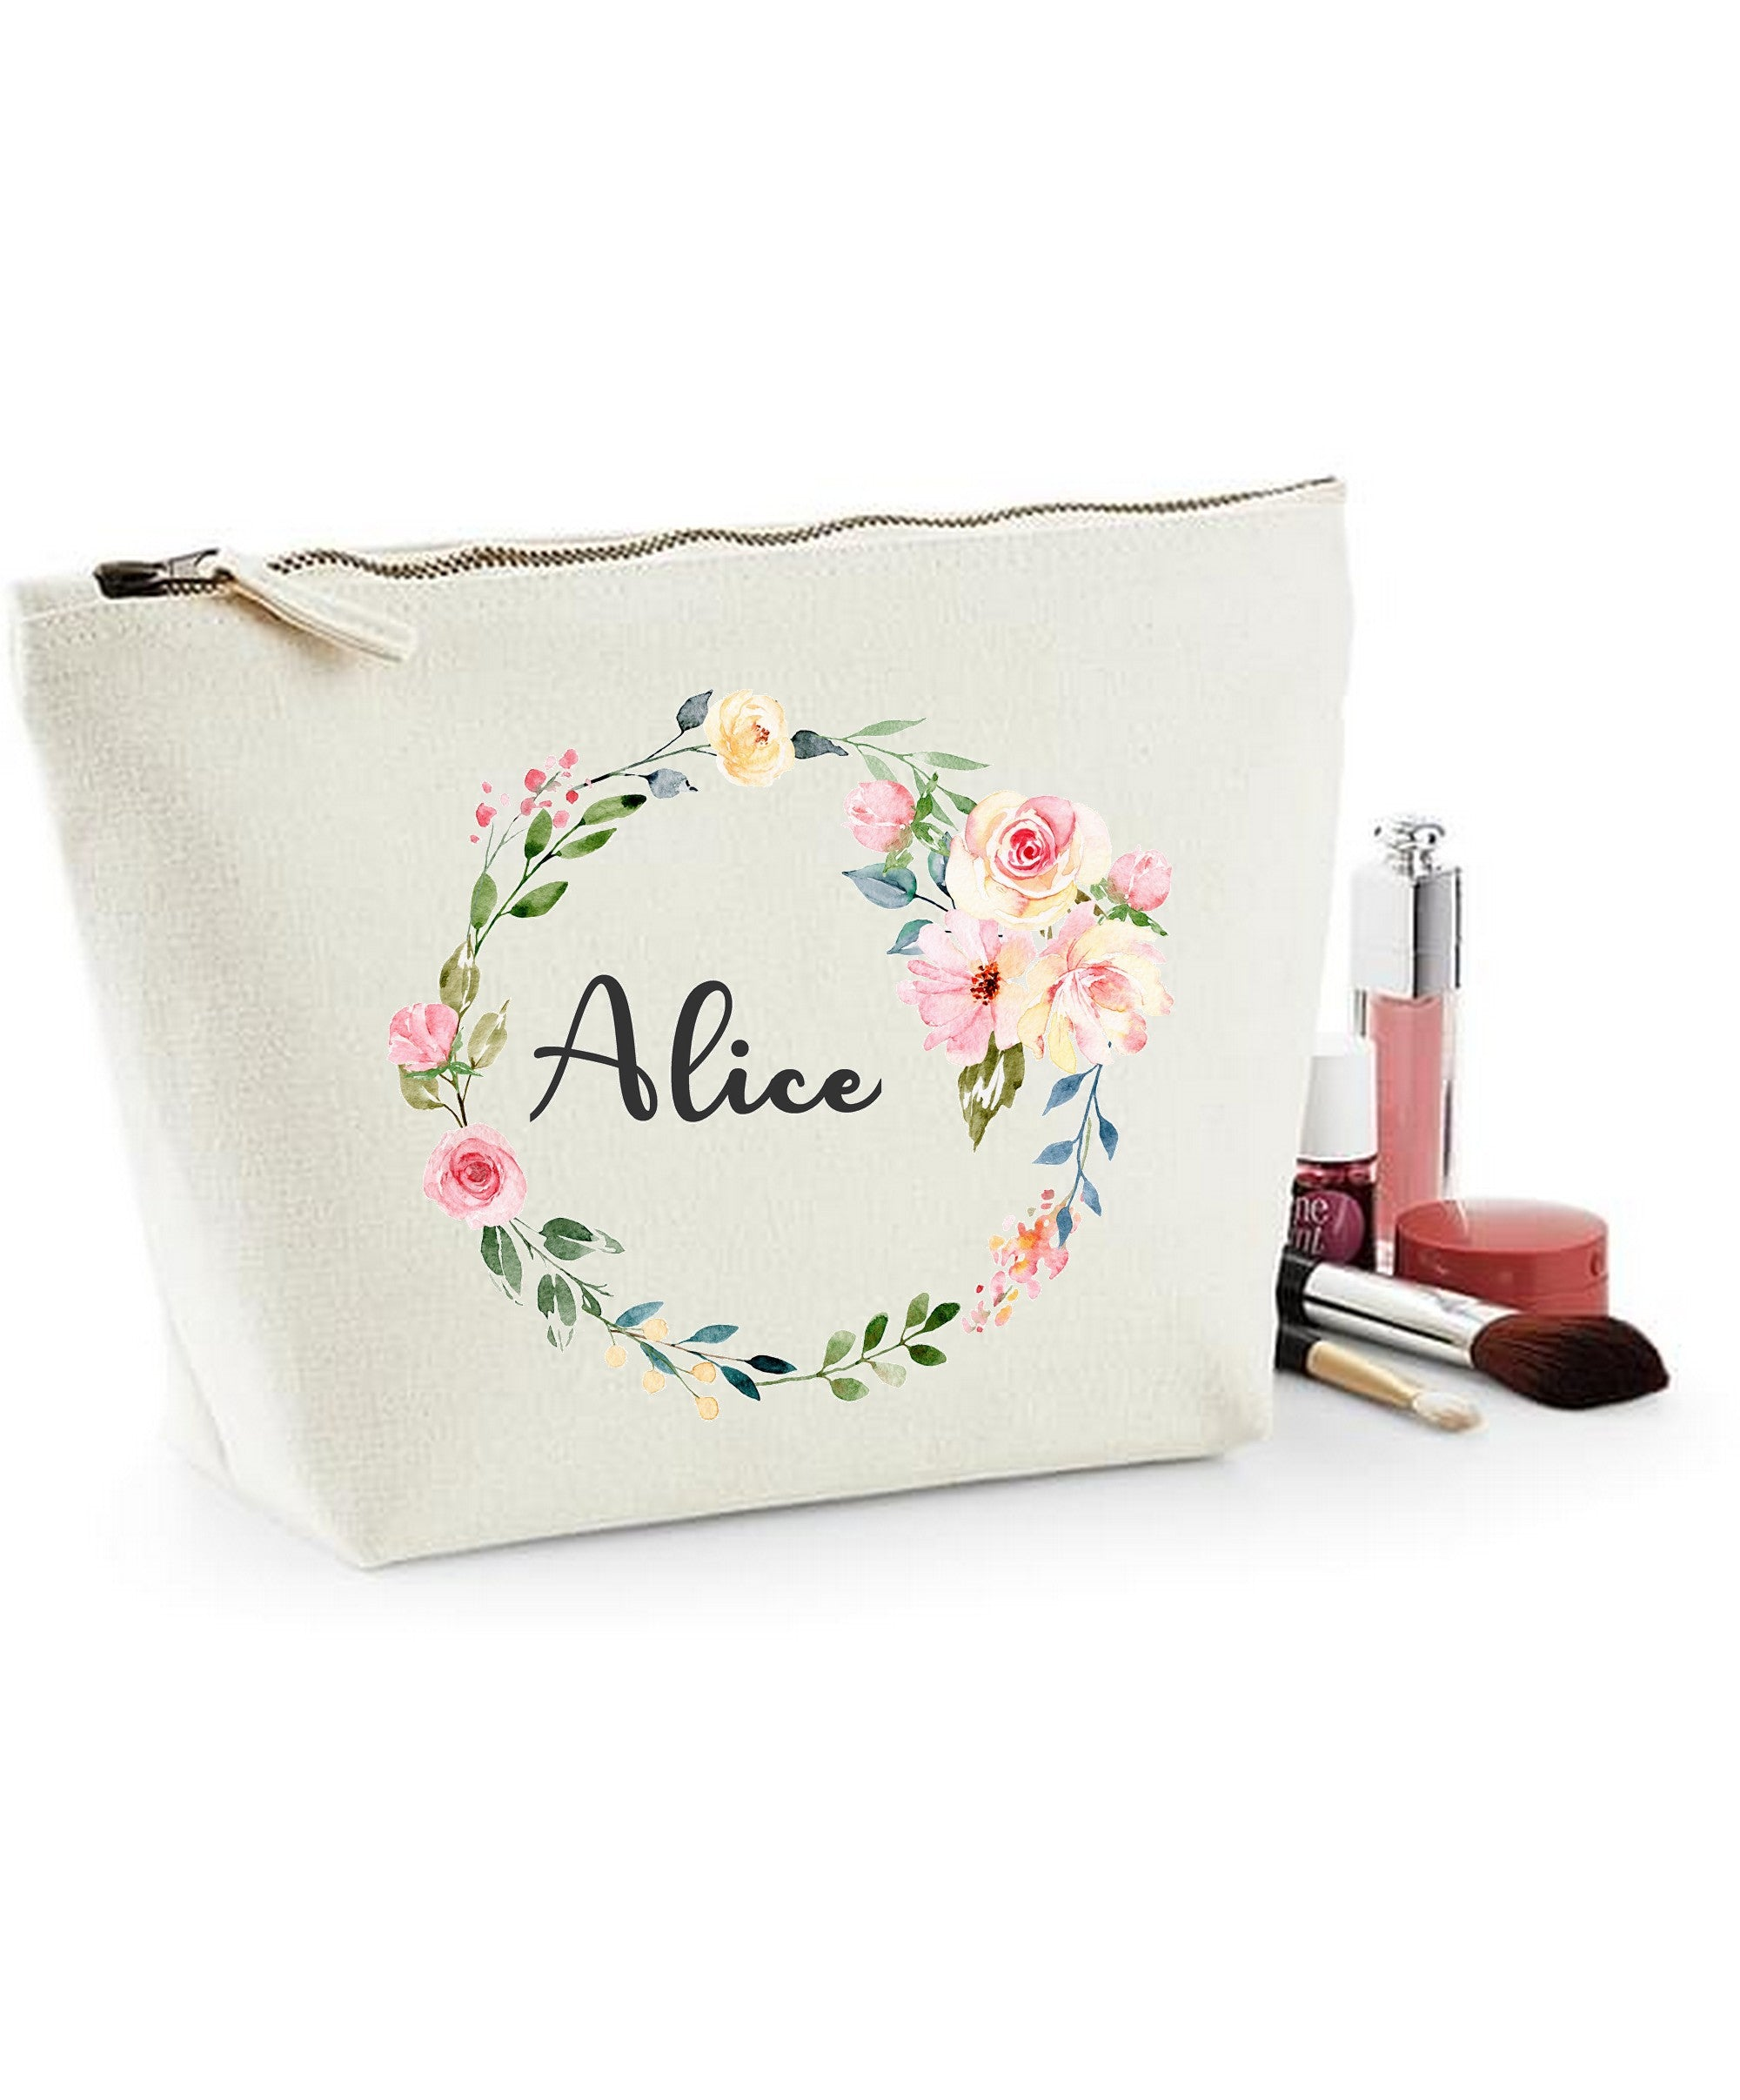 pochette fille personnalisee